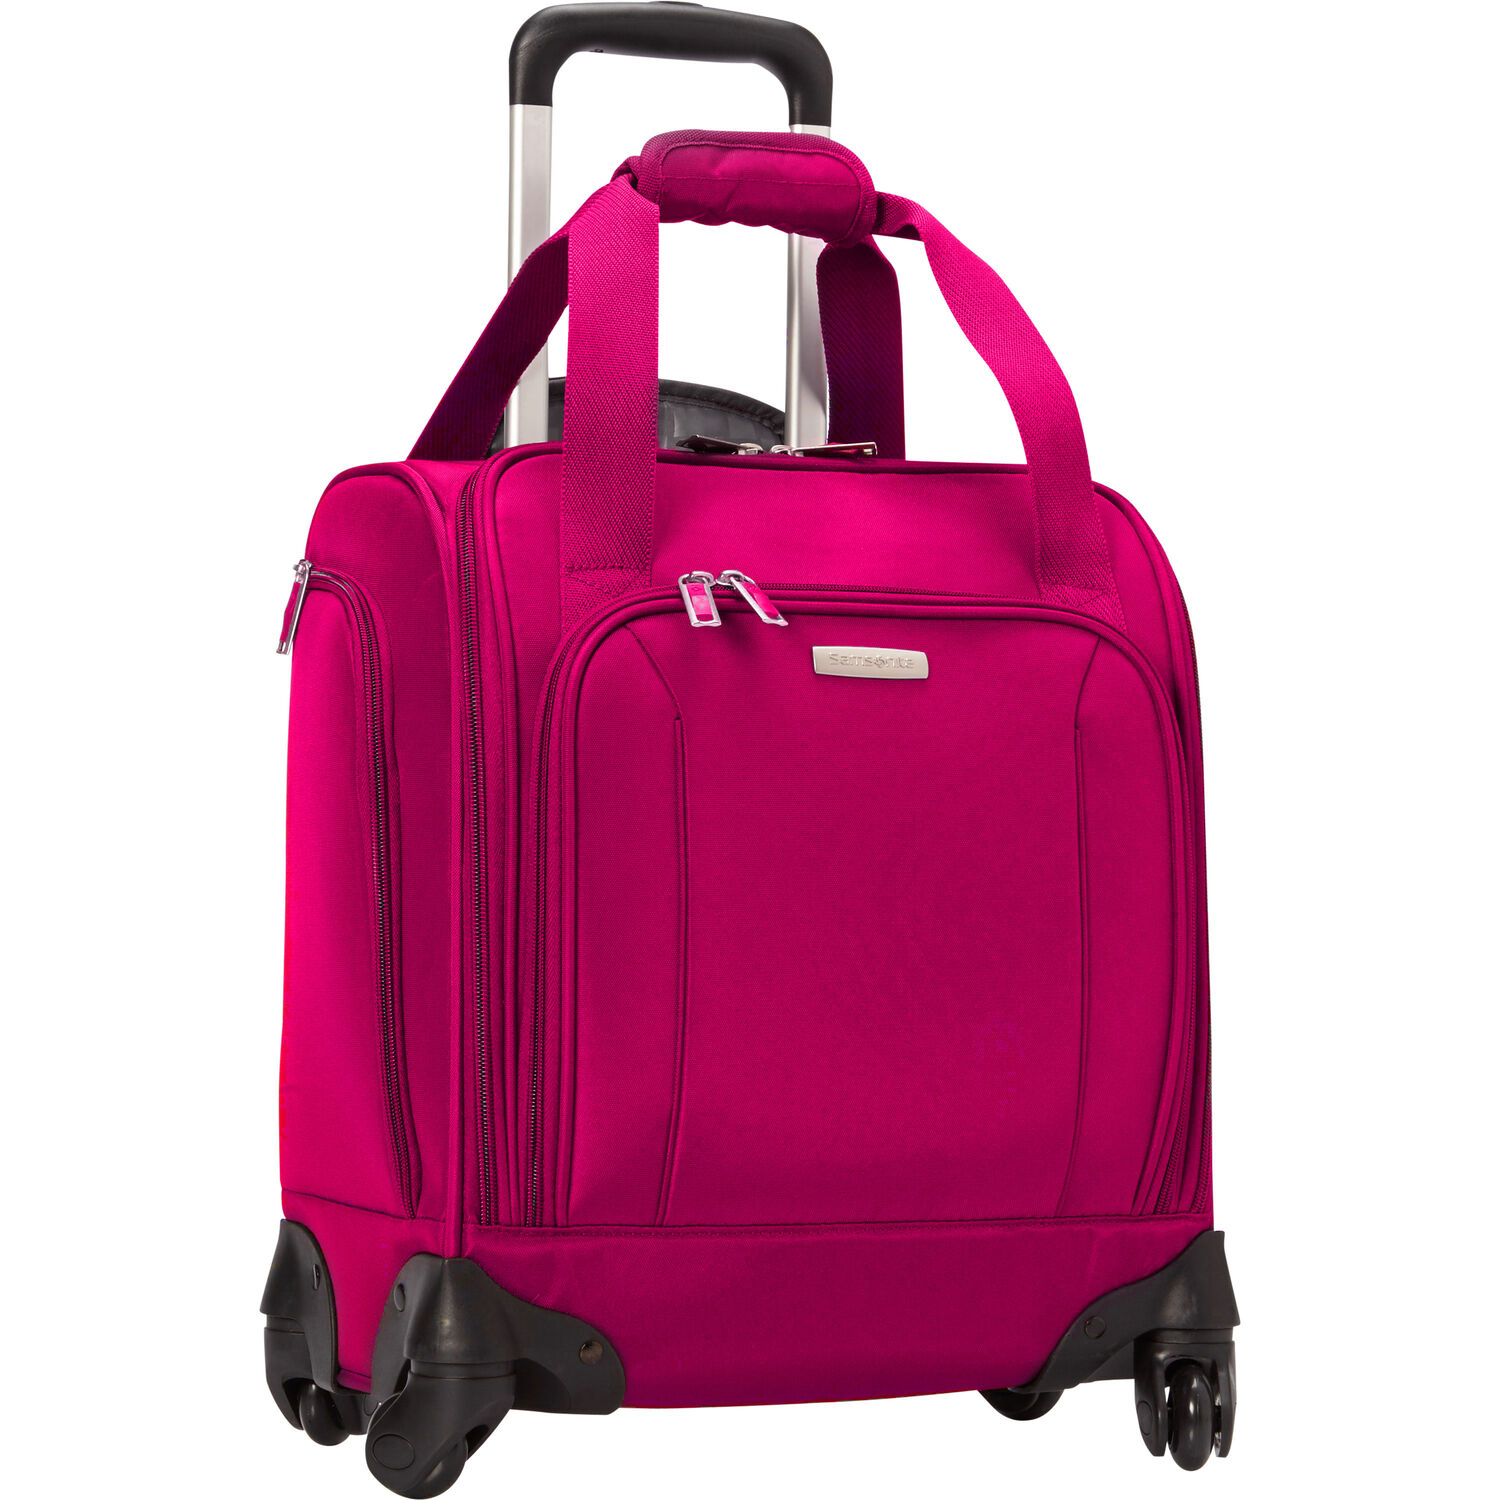 243518fab100c Samsonite Spinner Underseater with USB Port in the color Dark Pink.